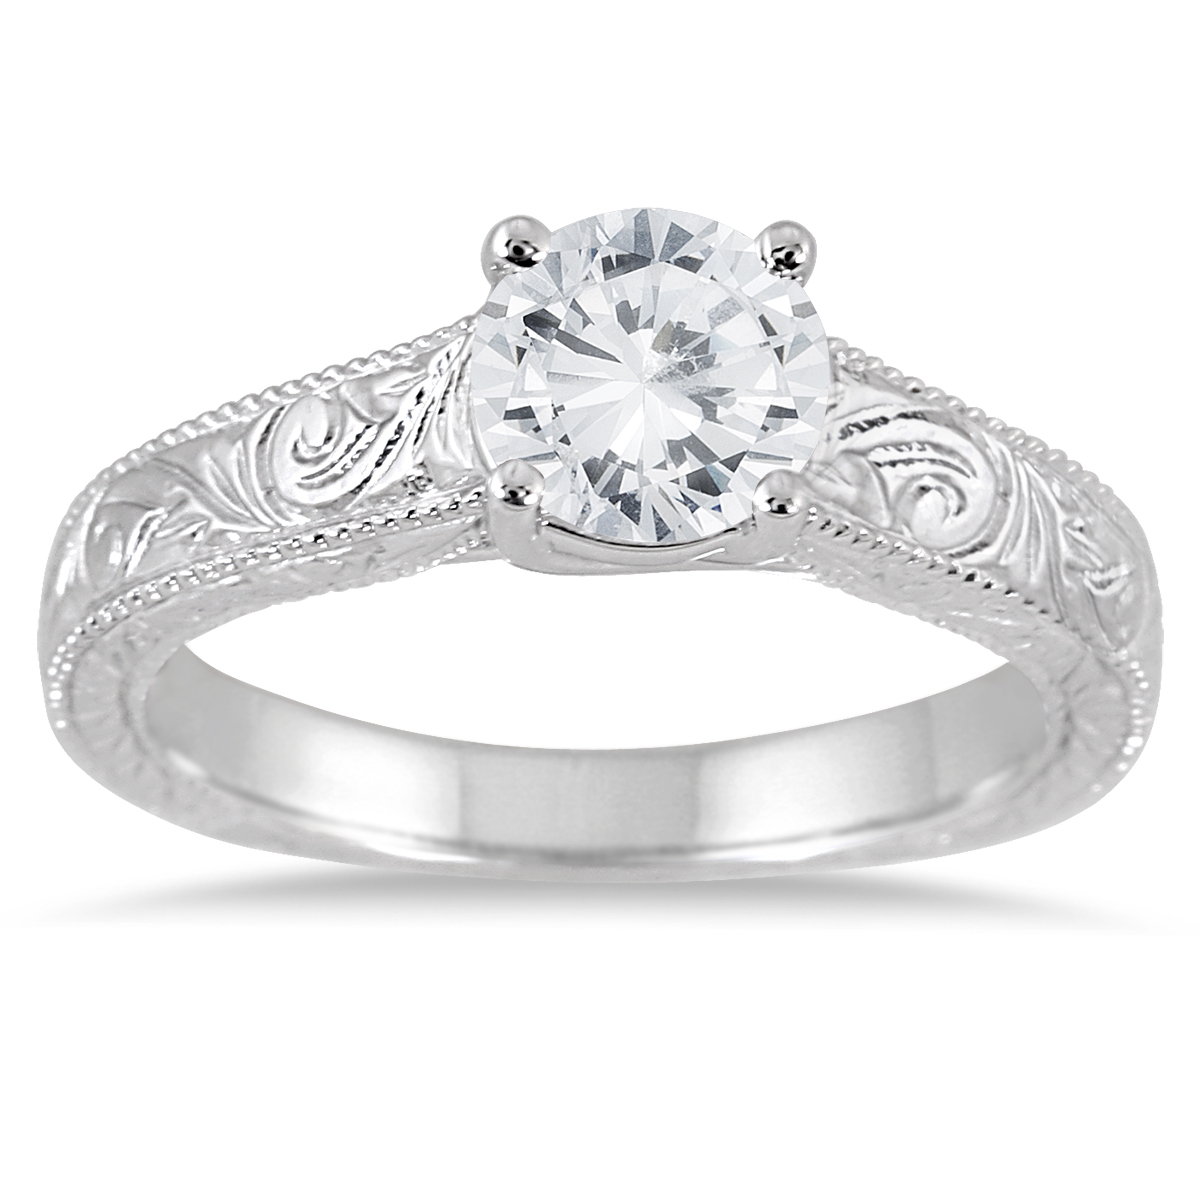 AGS Certified 1 Carat Diamond Engraved Ring in 14K White Gold (J-K Color, I2-I3 Clarity)